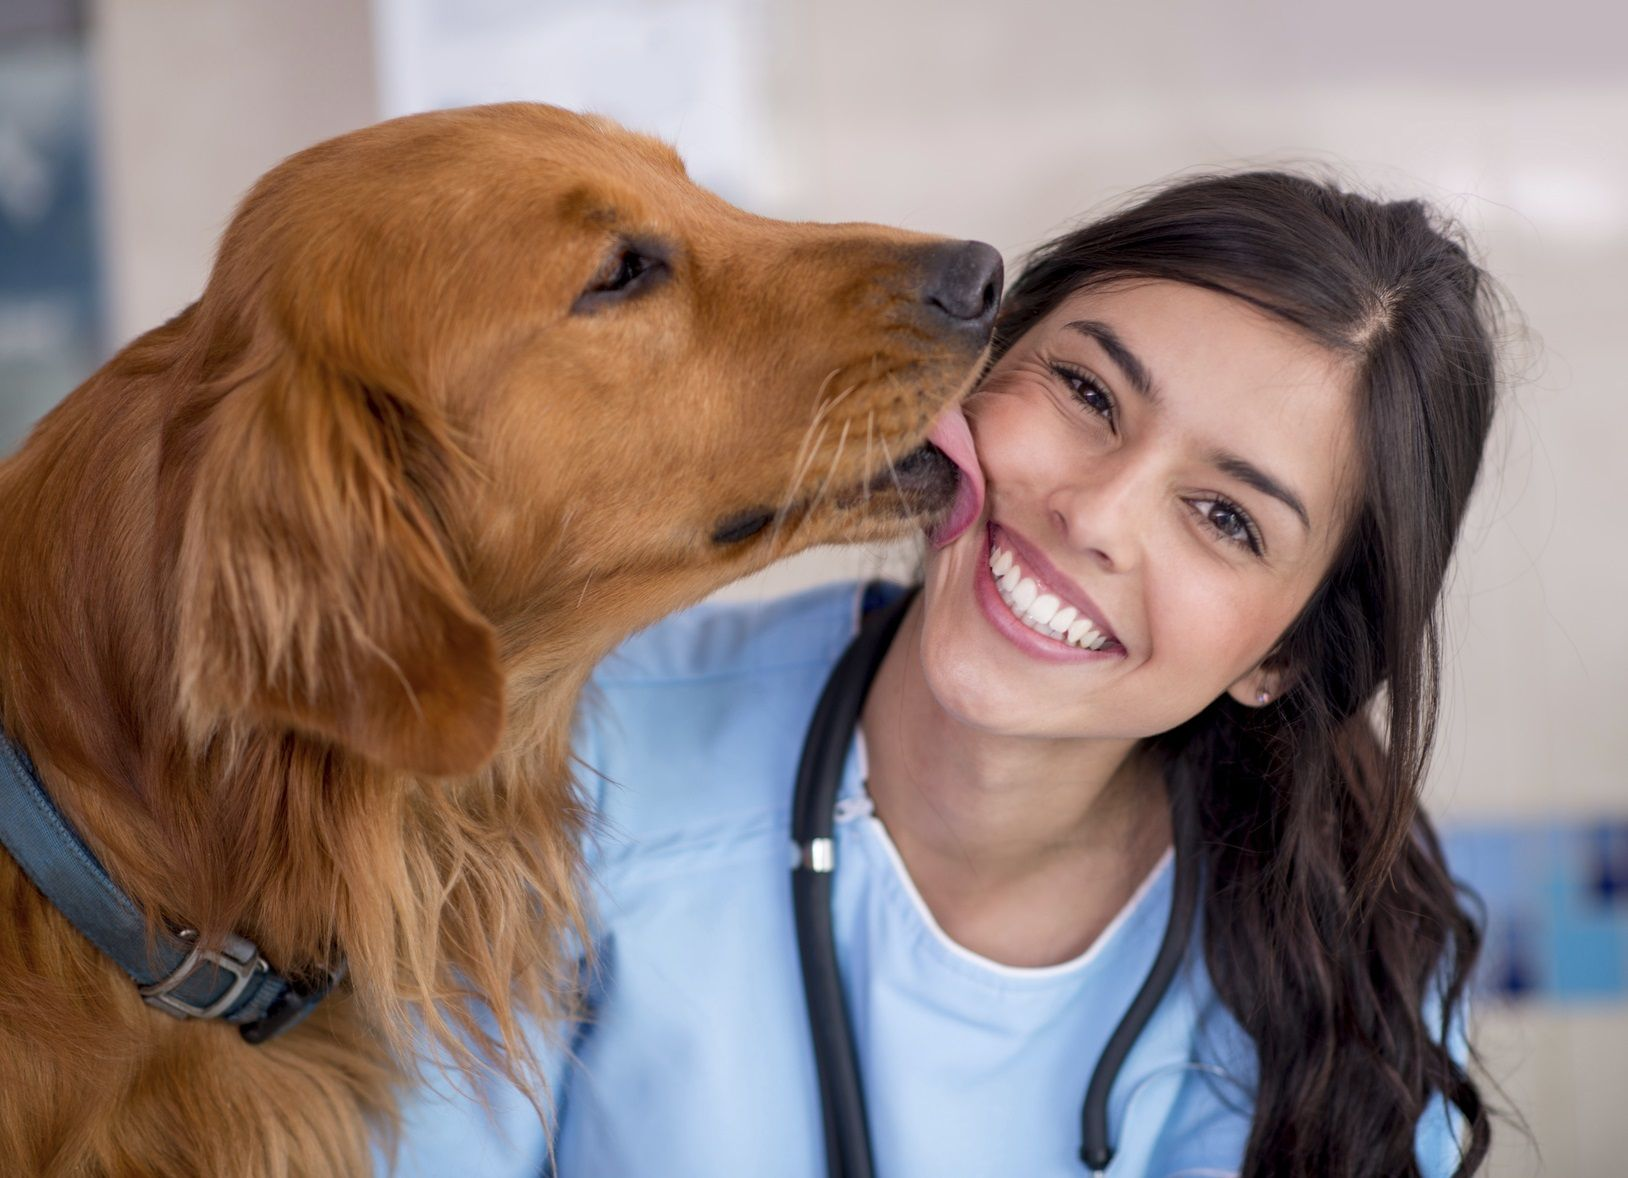 7 Things You'll Love About Being a Veterinarian Assistant